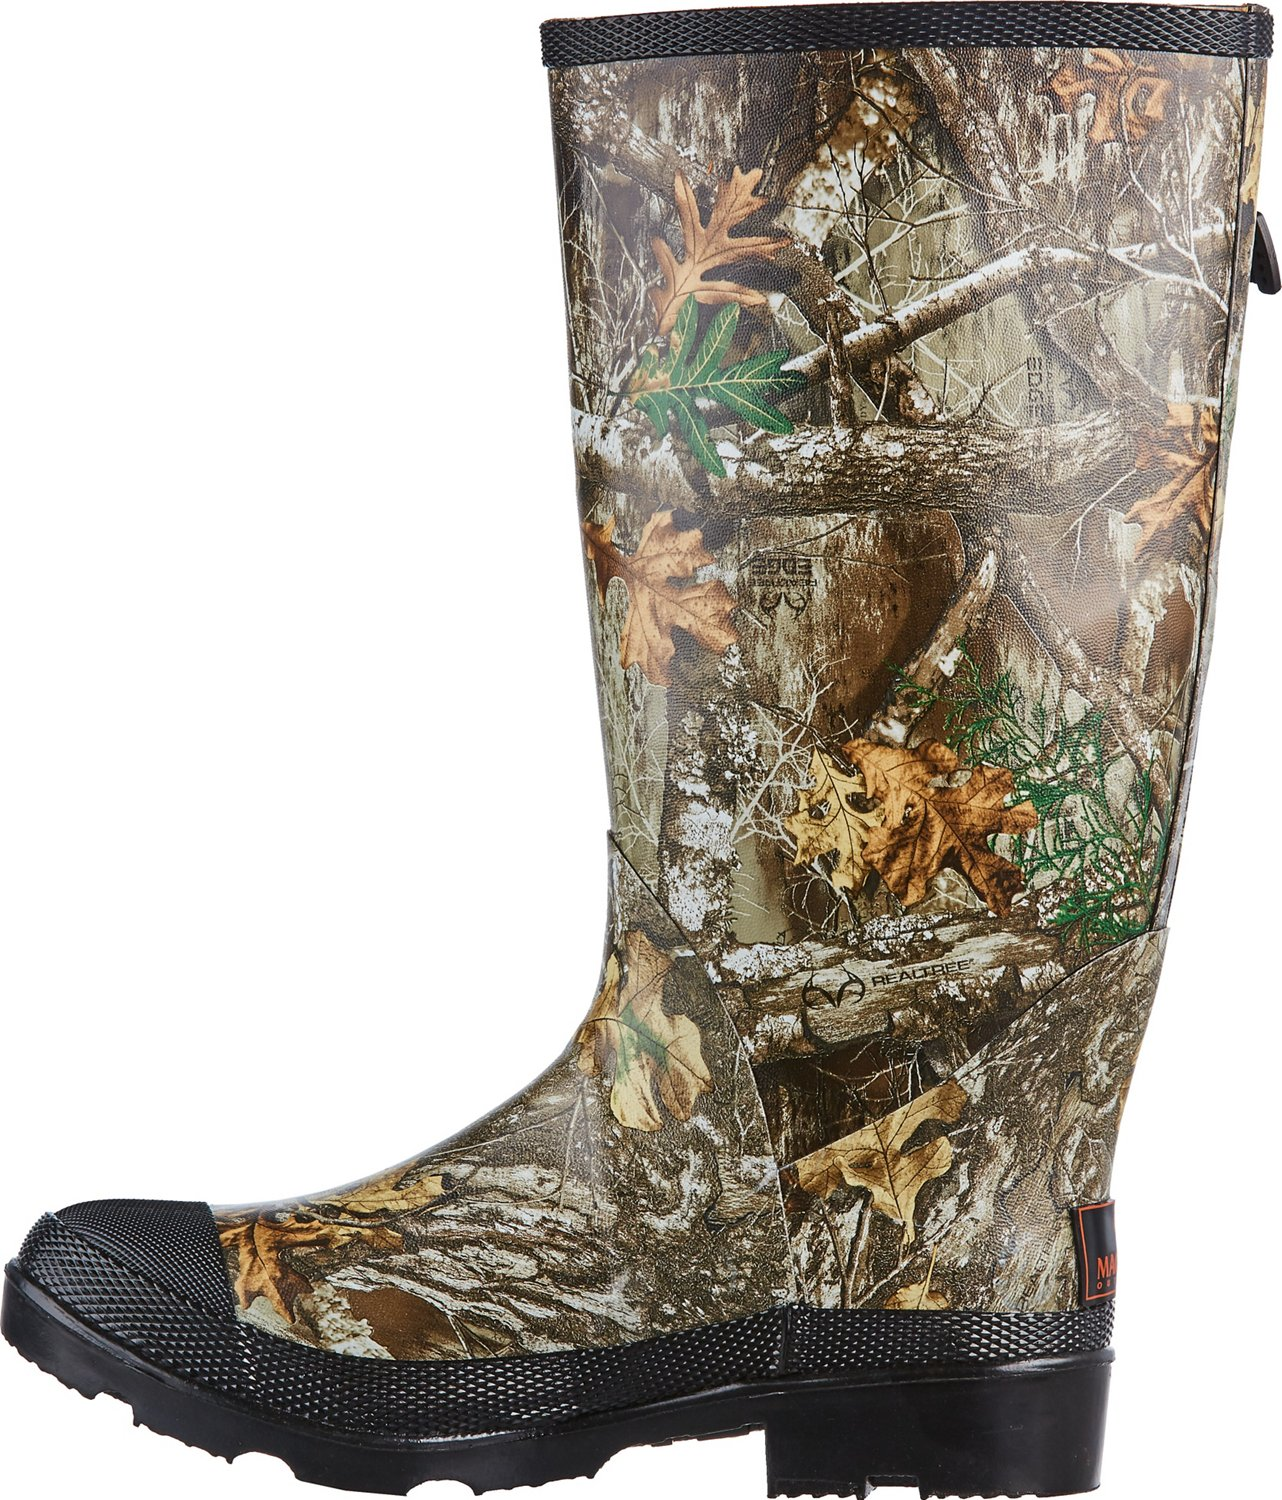 Magellan Outdoors Men's Realtree Edge Rubber Boots - view number 2